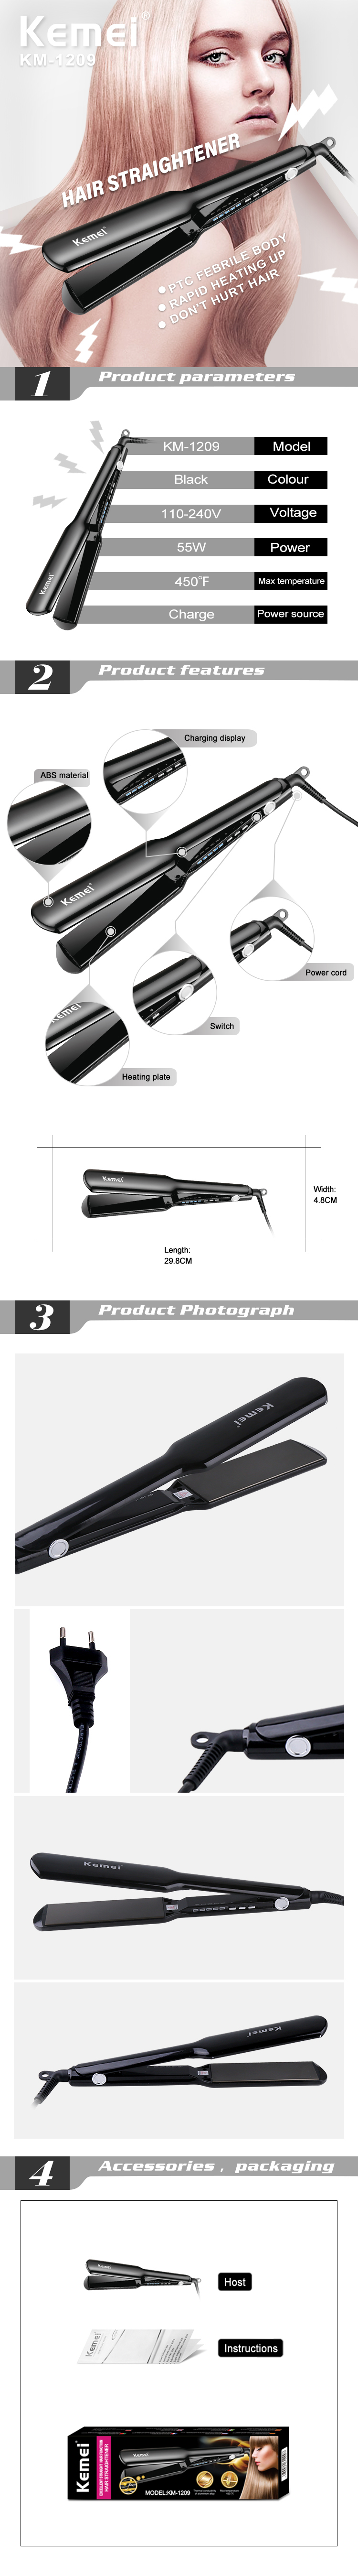 Kemei KM-1209 450F Hair Straightener Heating Plate Straight Hair Styling Tool Fast Warm-up Thermal Performance With LCD Display